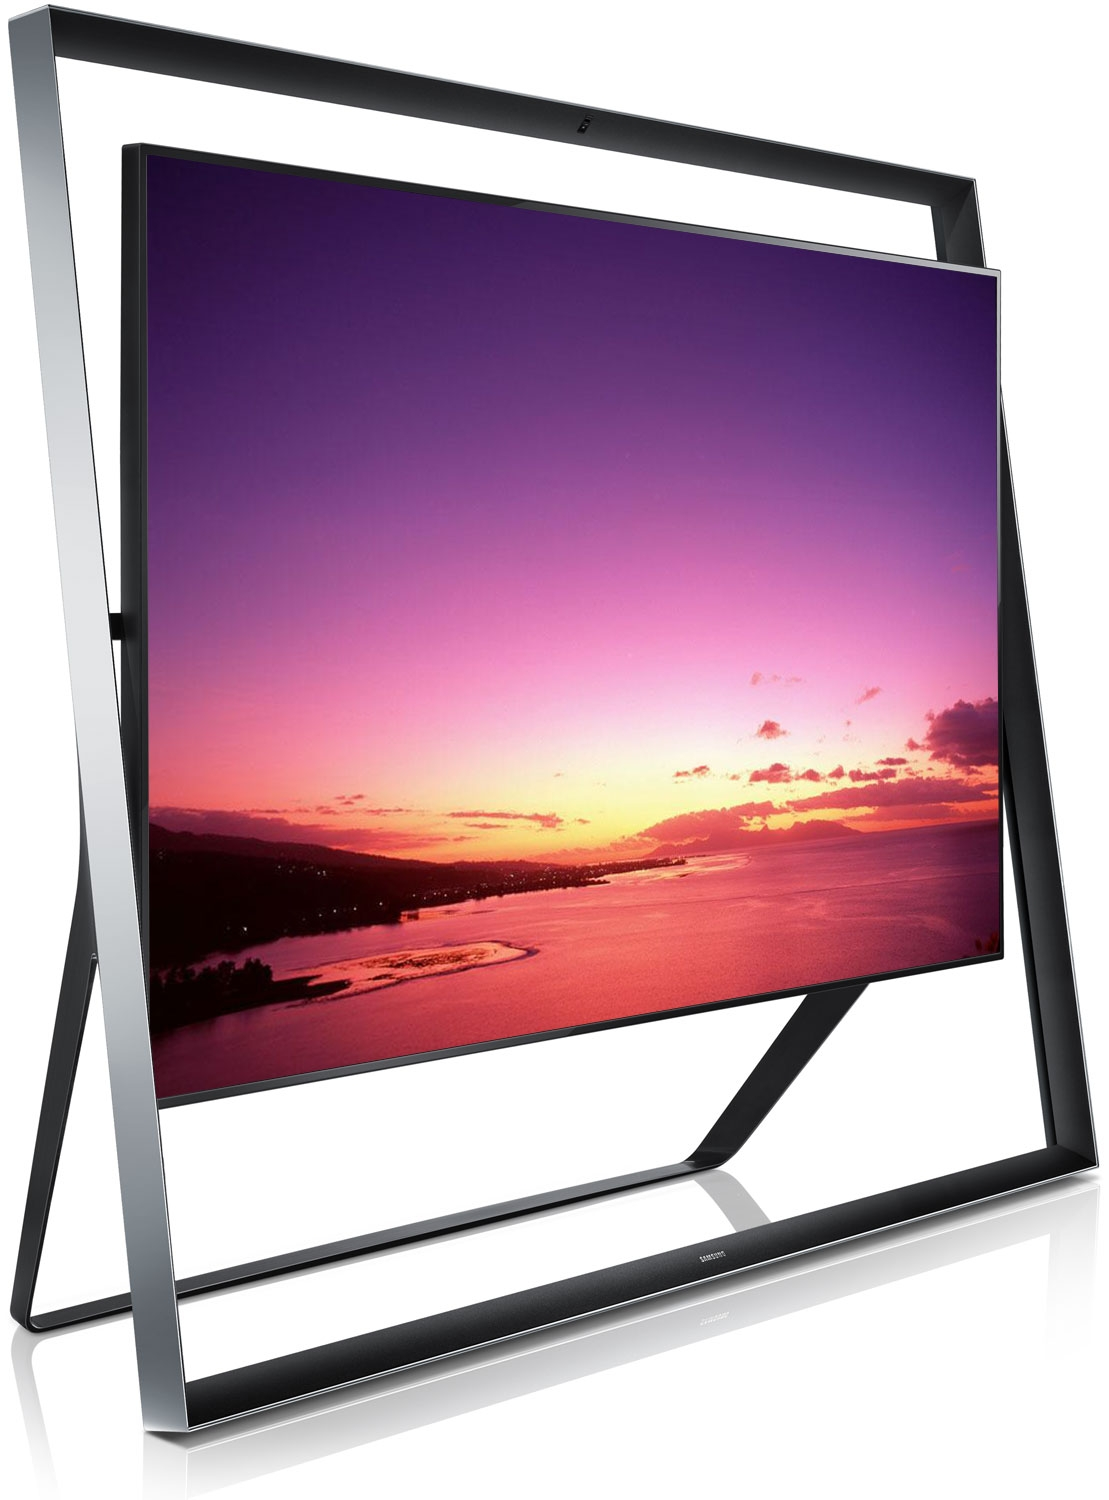 "Image for Samsung UN85S9A 85"" 3D 4K Ultra LED HDTV"